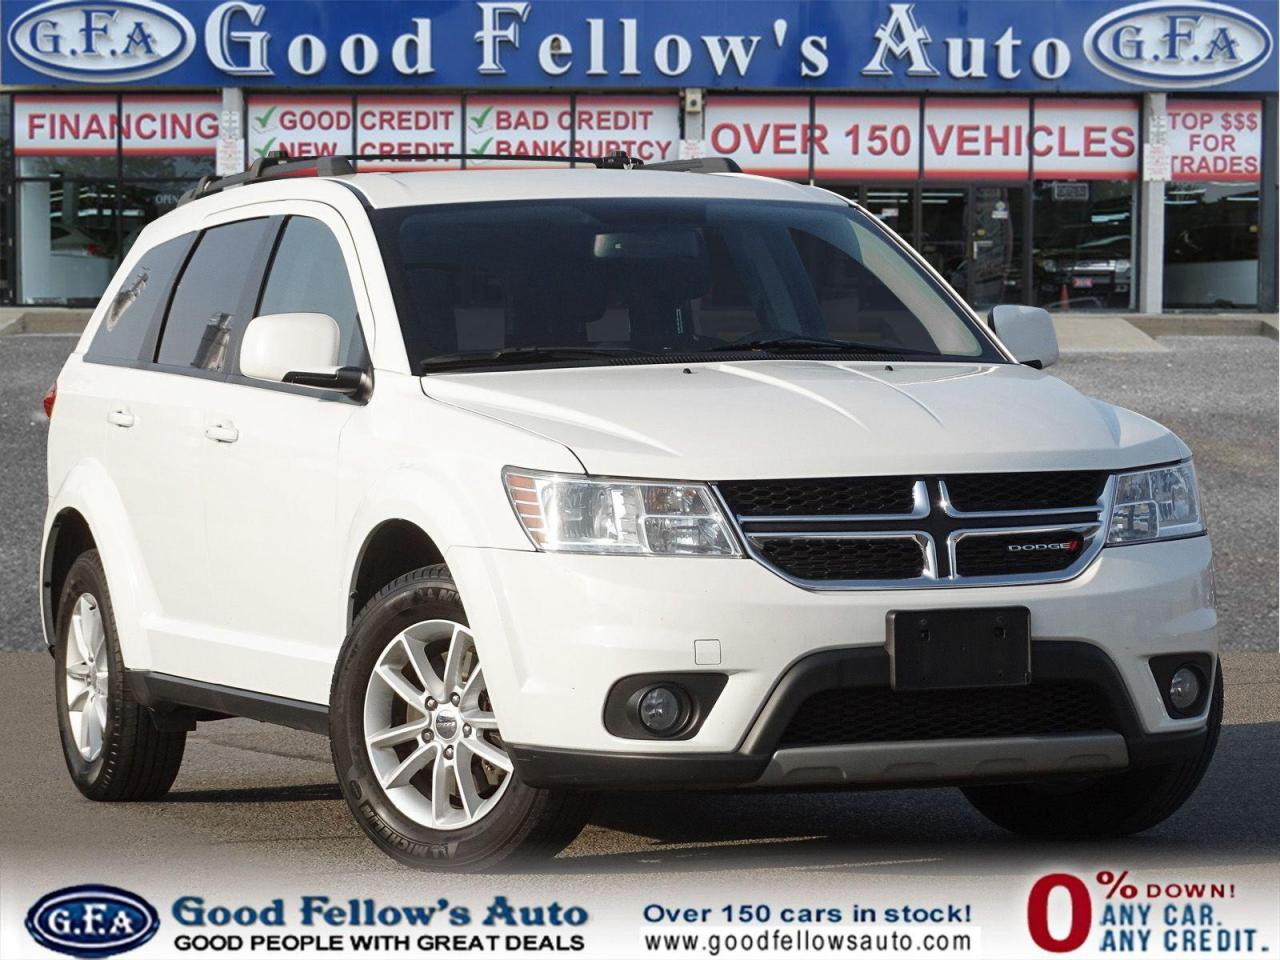 used 2016 Dodge Journey car, priced at $11,900